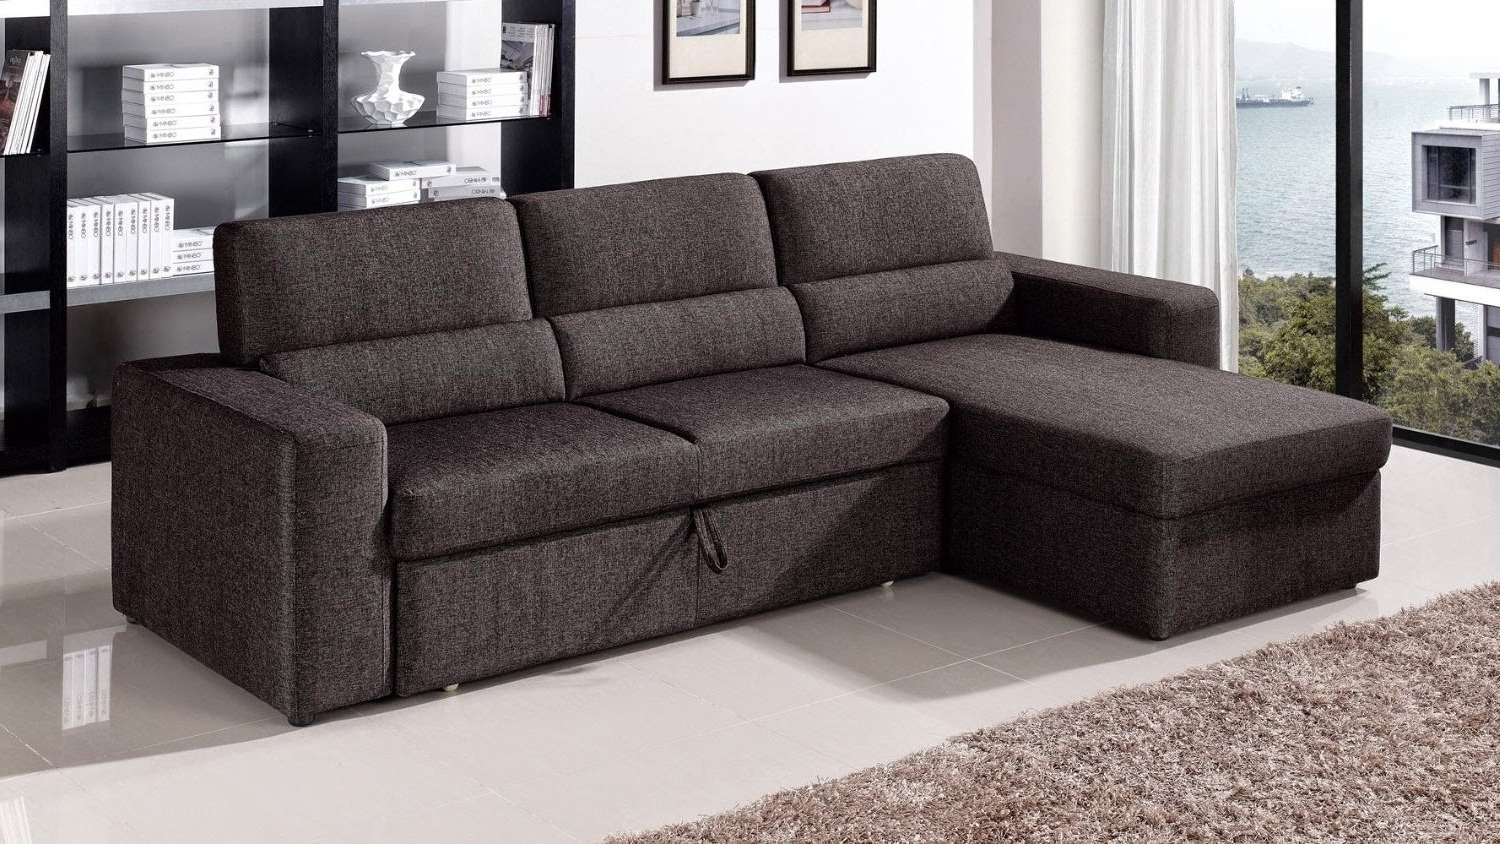 Well Known Sectional Sofas With Queen Size Sleeper For Inspirational Leather Sectional Sofa Pull Out – Mediasupload (View 14 of 15)